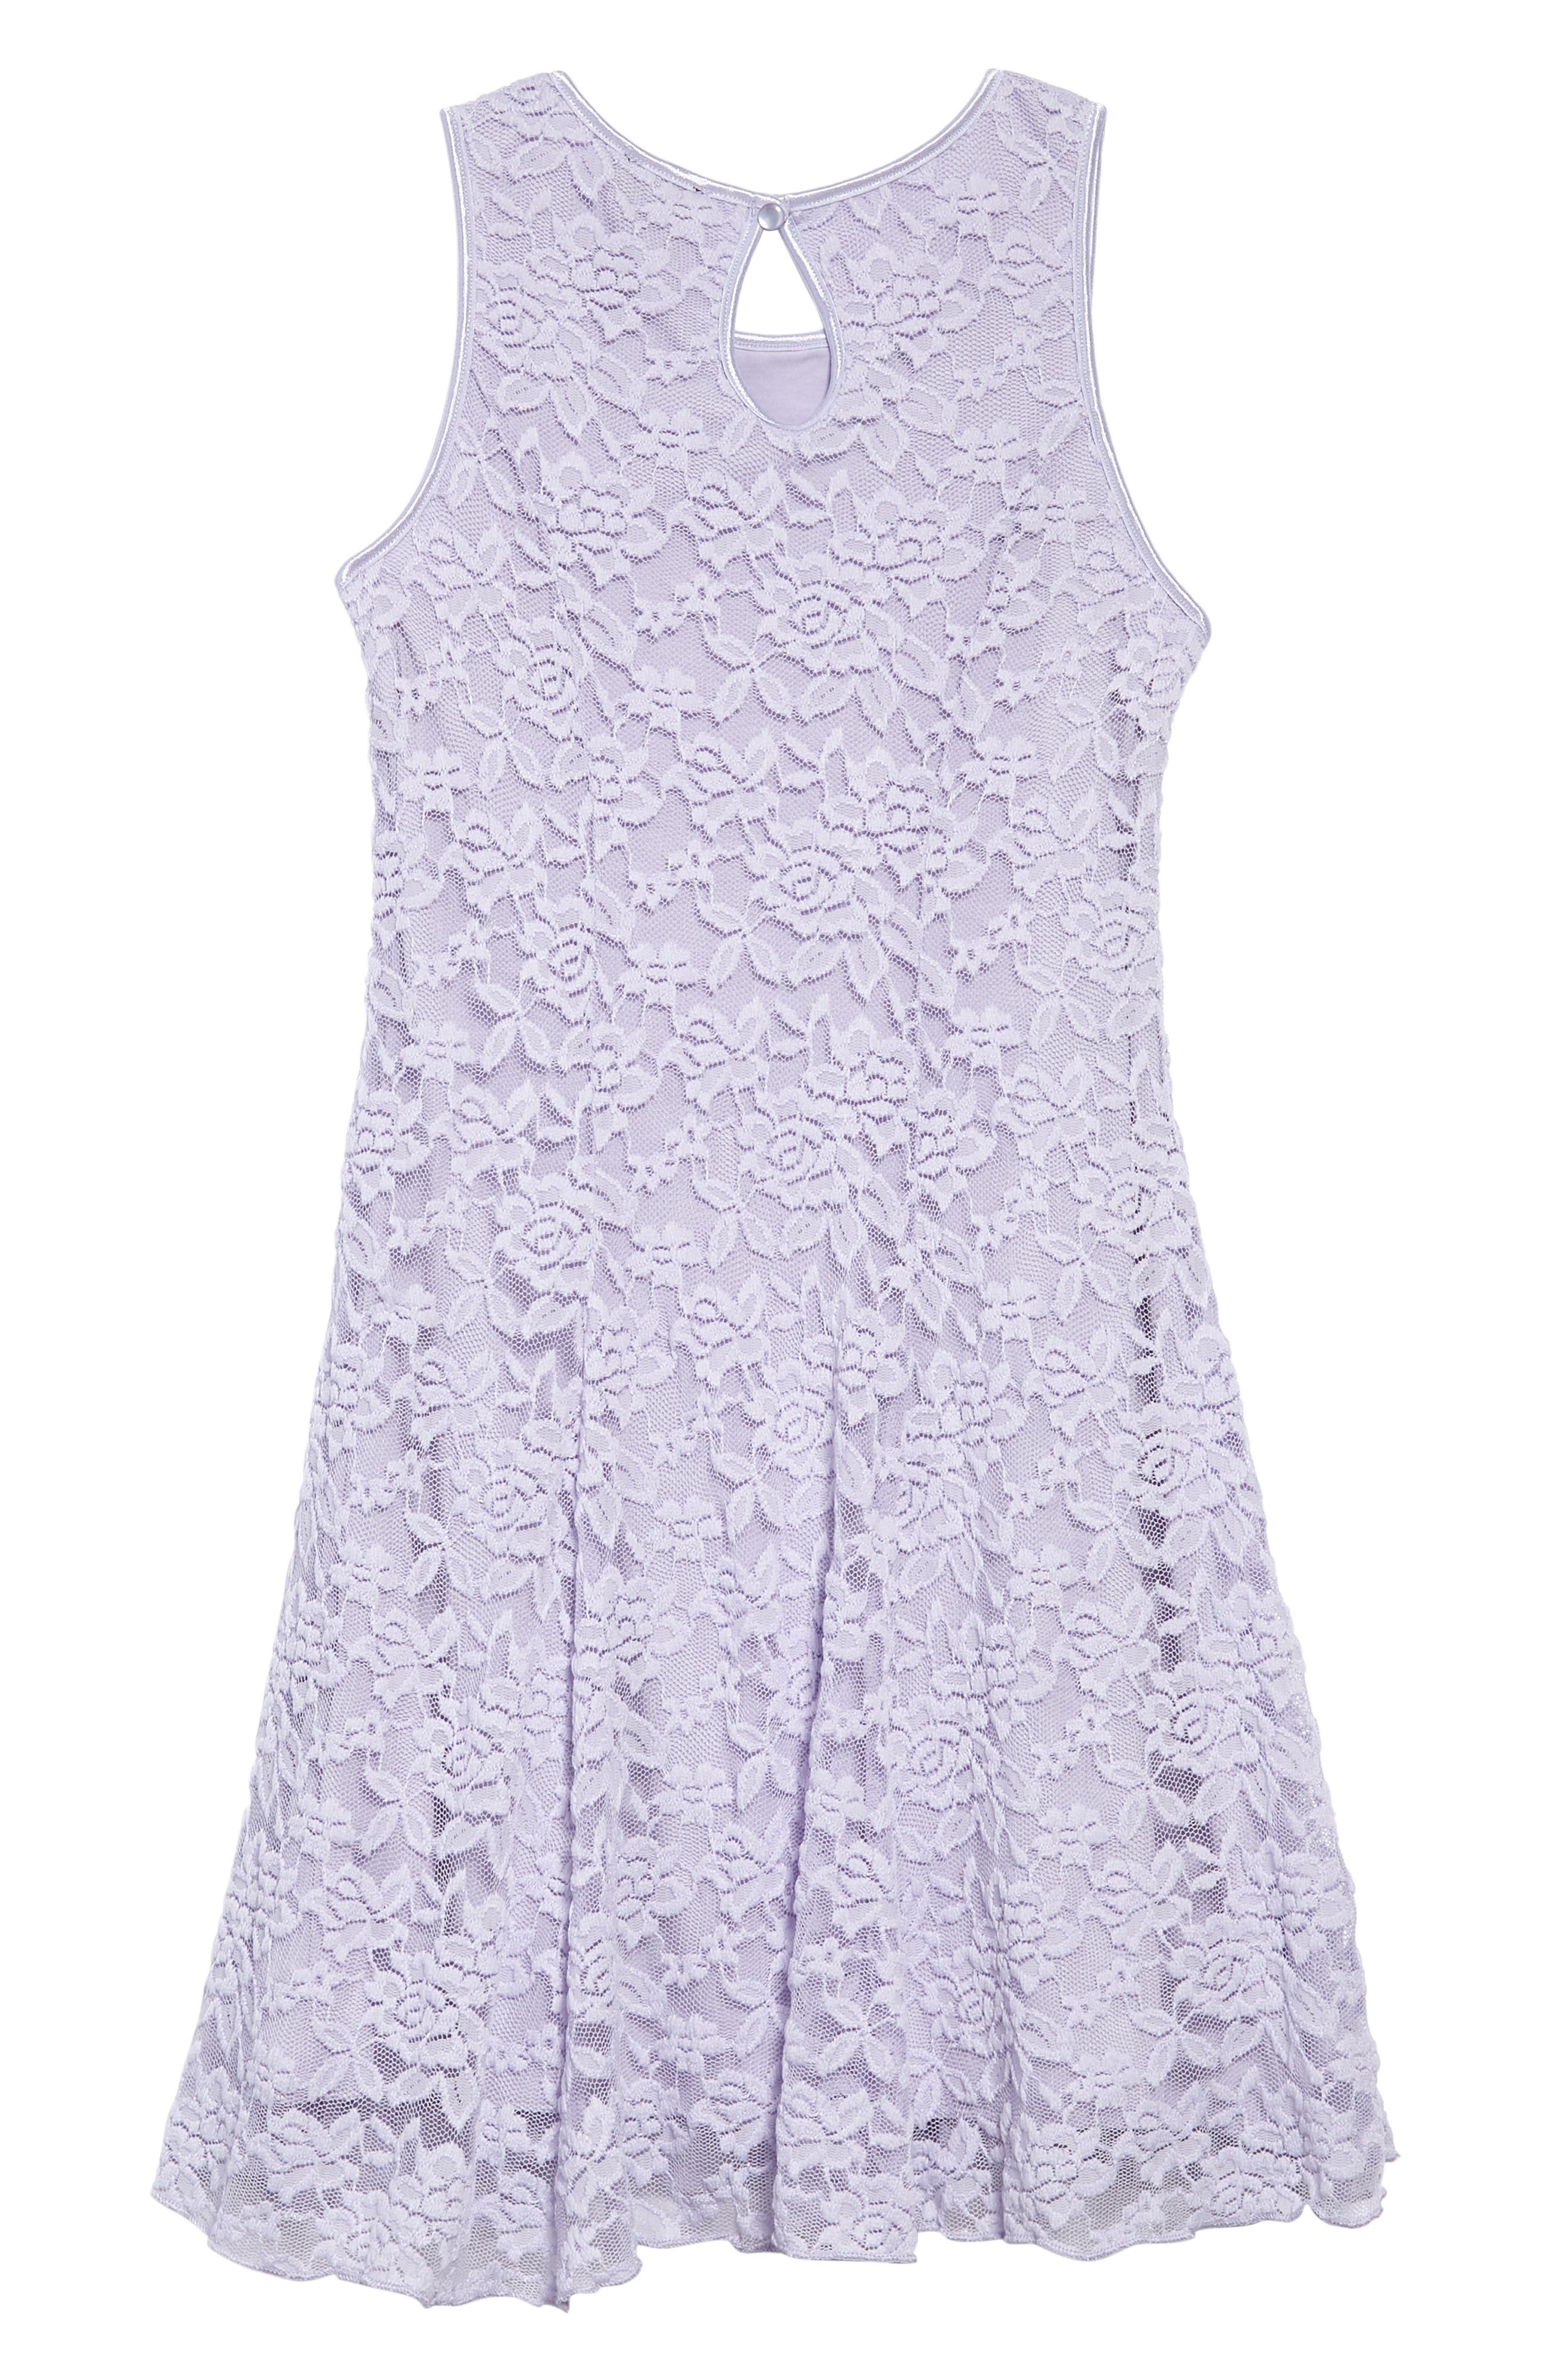 Floral Lace Sleeveless Dress,                             Alternate thumbnail 2, color,                             530